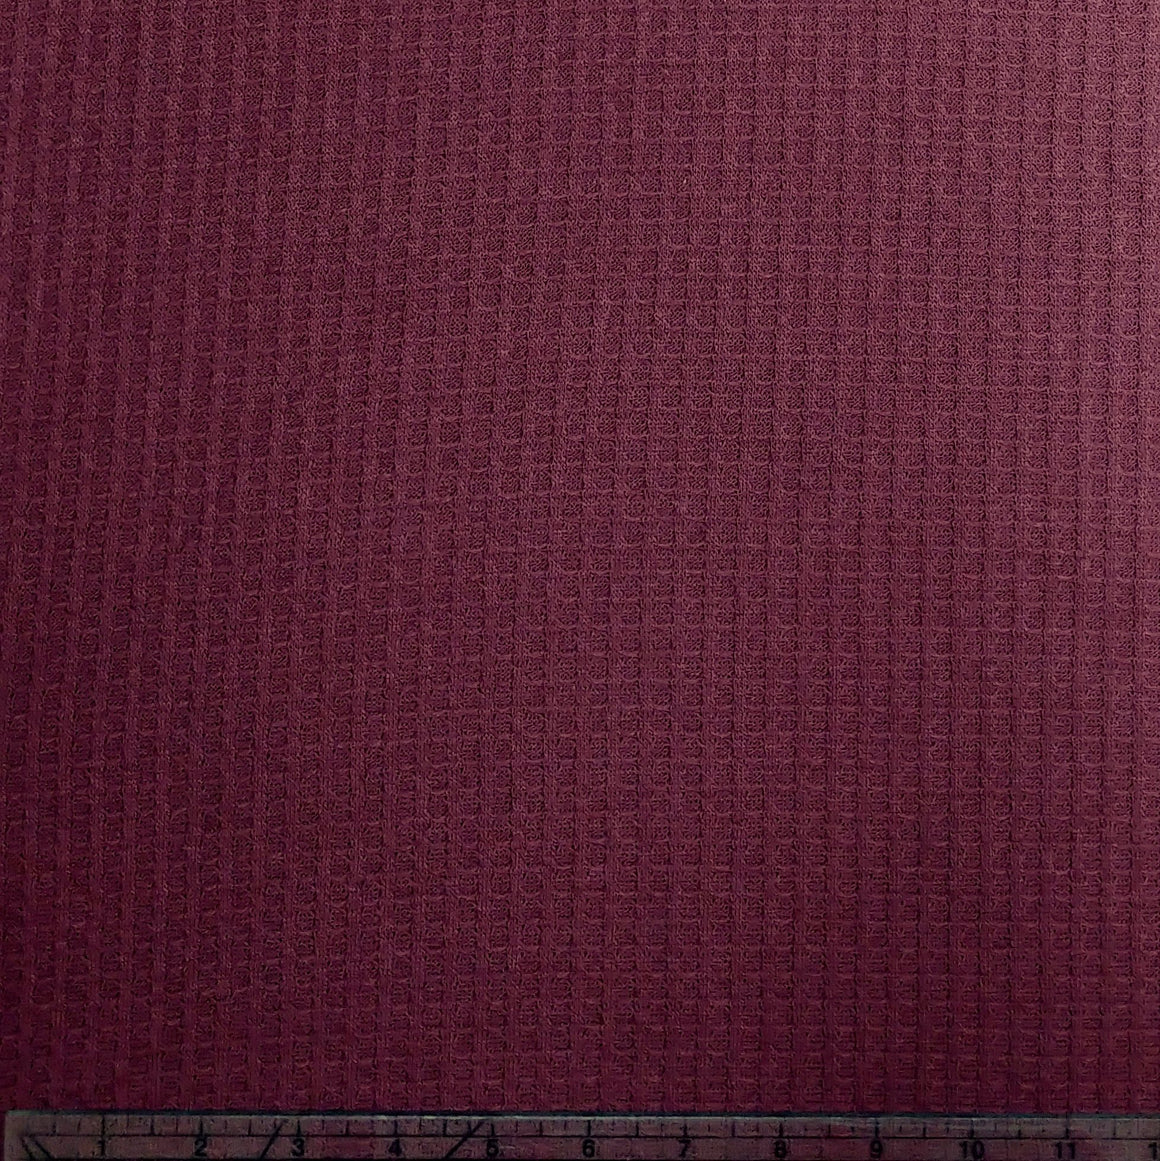 Wine Waffle Knit Fabric, 1 Yard - Raspberry Creek Fabrics